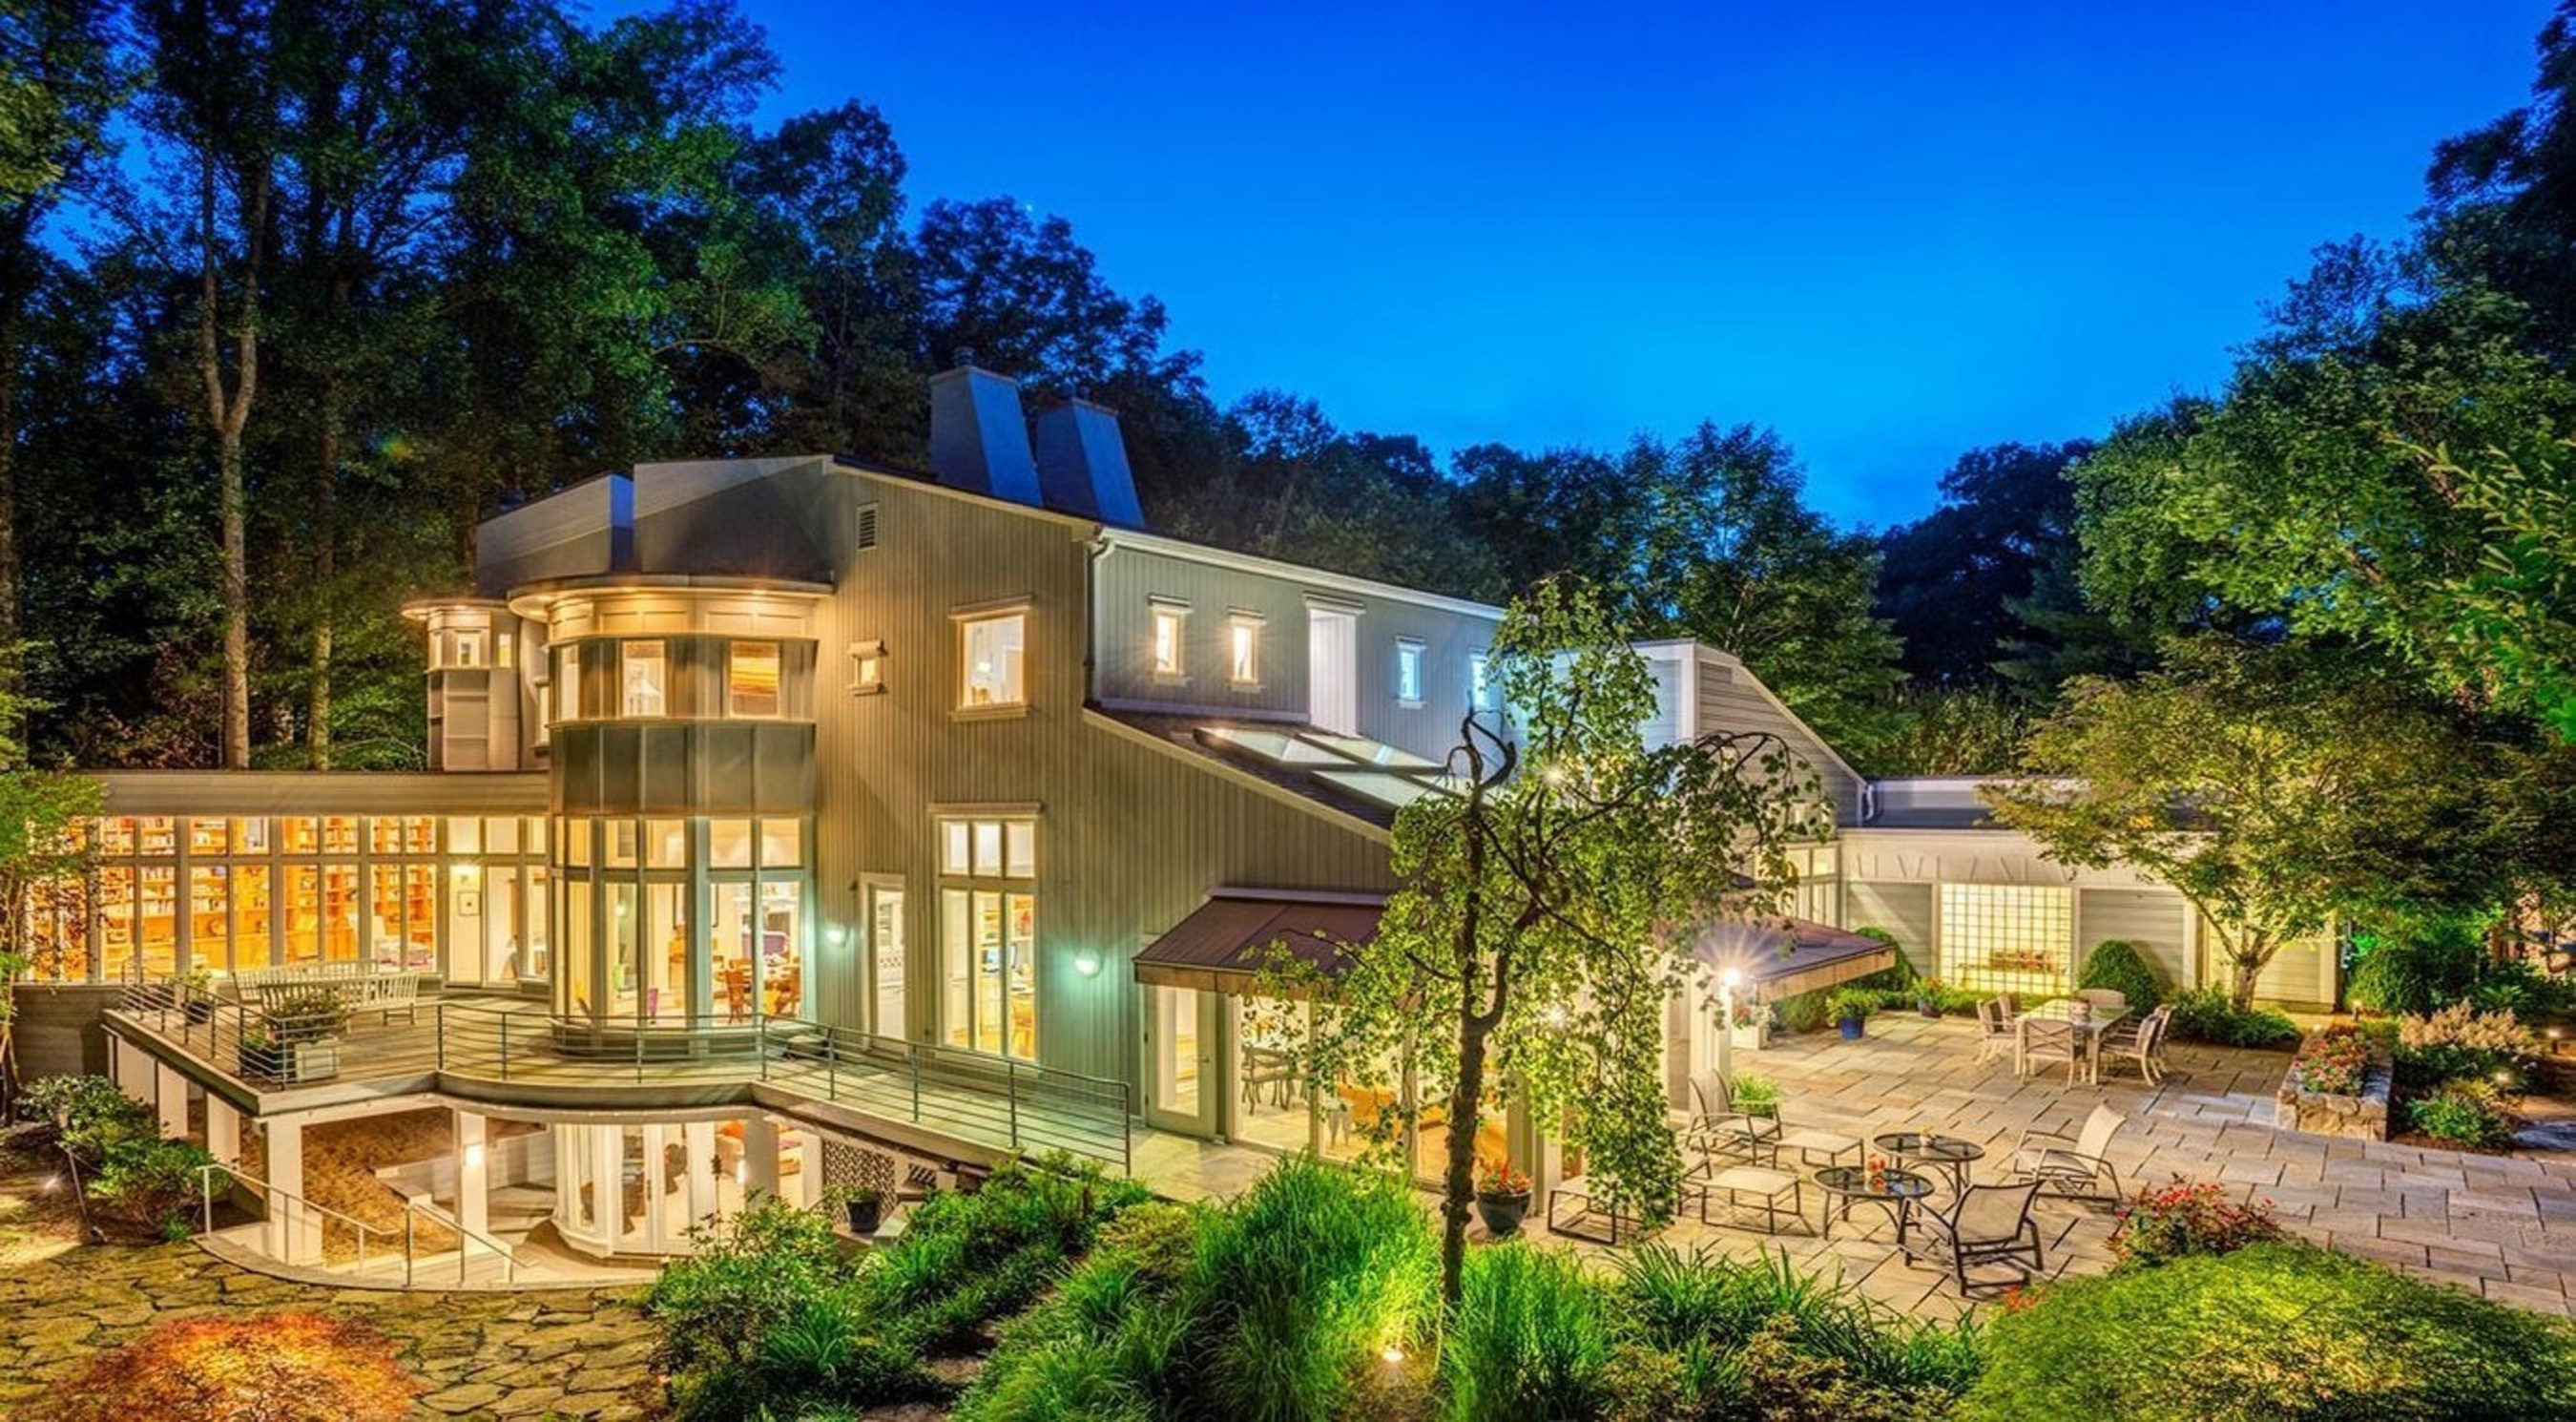 Auction Announced for Modern Estate in Renowned Great Falls, Virginia by DeCaro Luxury Auctions